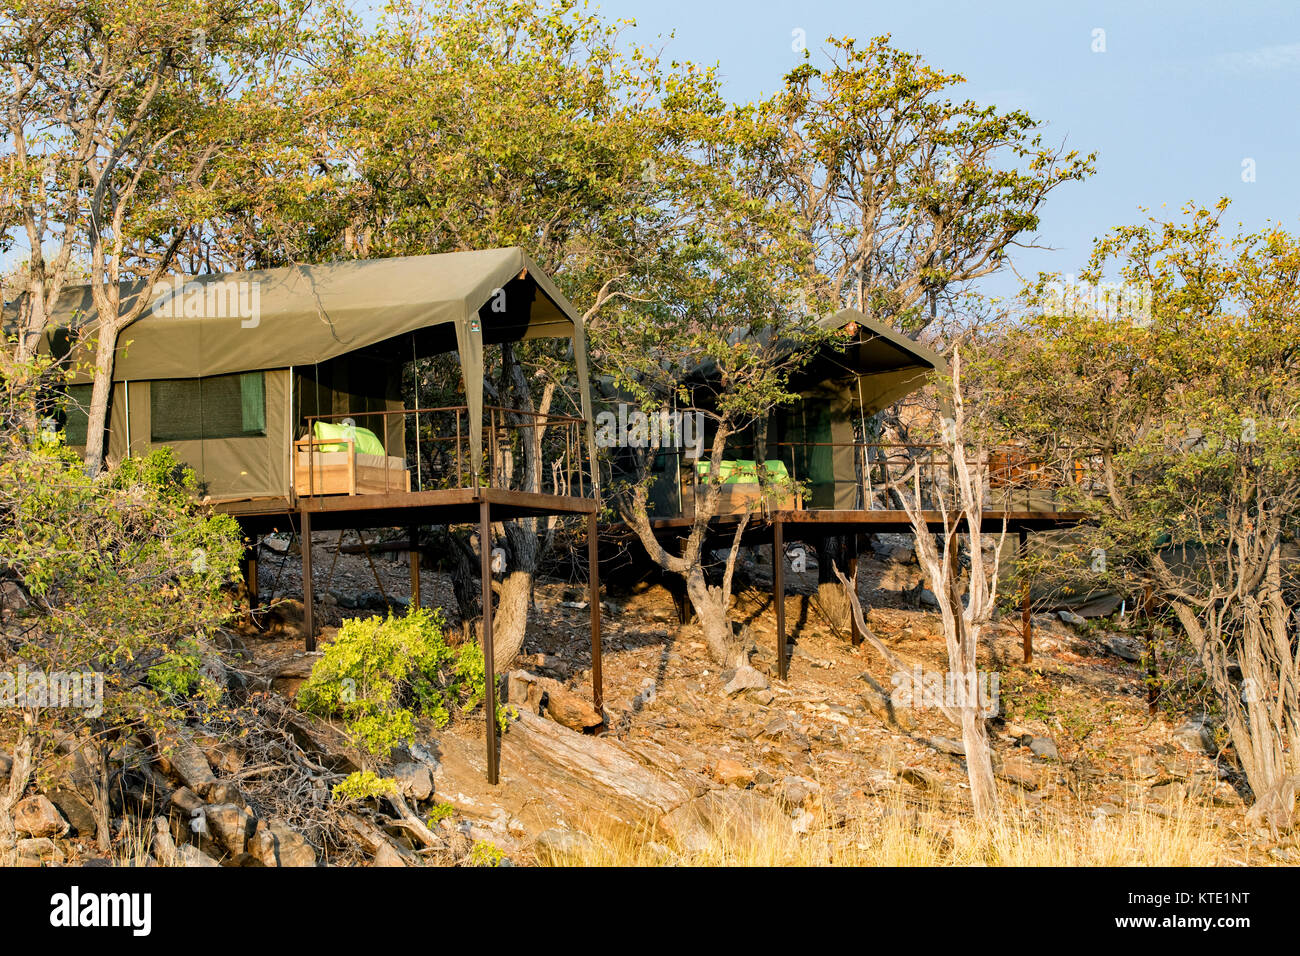 Tent Exteriors at Huab Under Canvas, Damaraland, Namibia, Africa - Stock Image